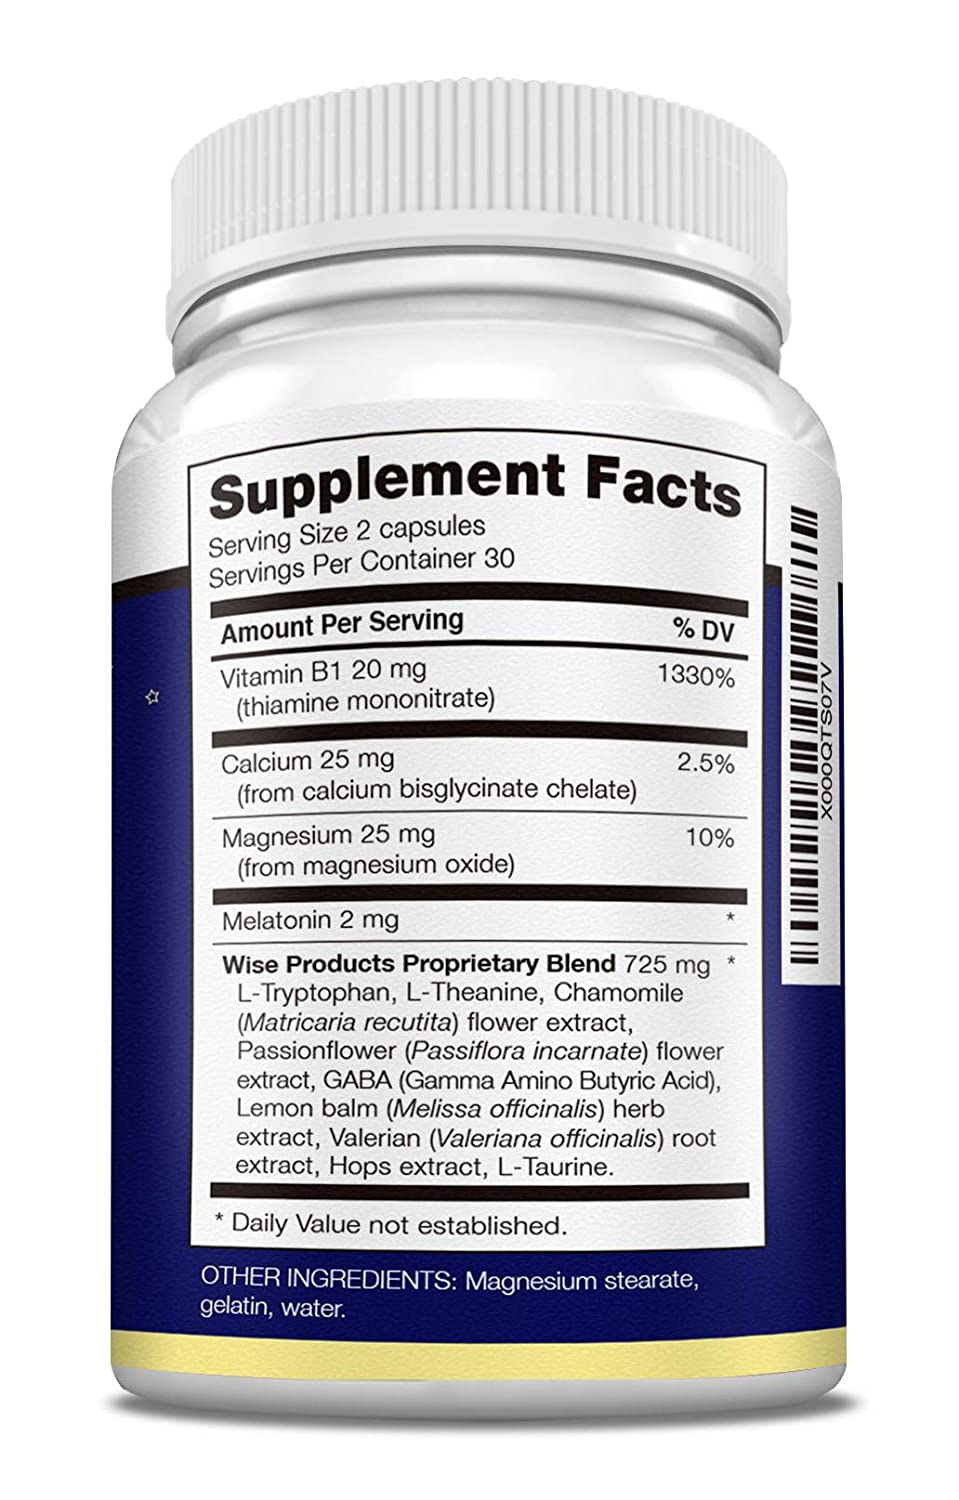 Amazon.com: Natural Sleep Aid Pills to Fall Asleep Fast with Melatonin, Minerals and Herbal Blend - Non-Habit Forming - End Insomnia Now!